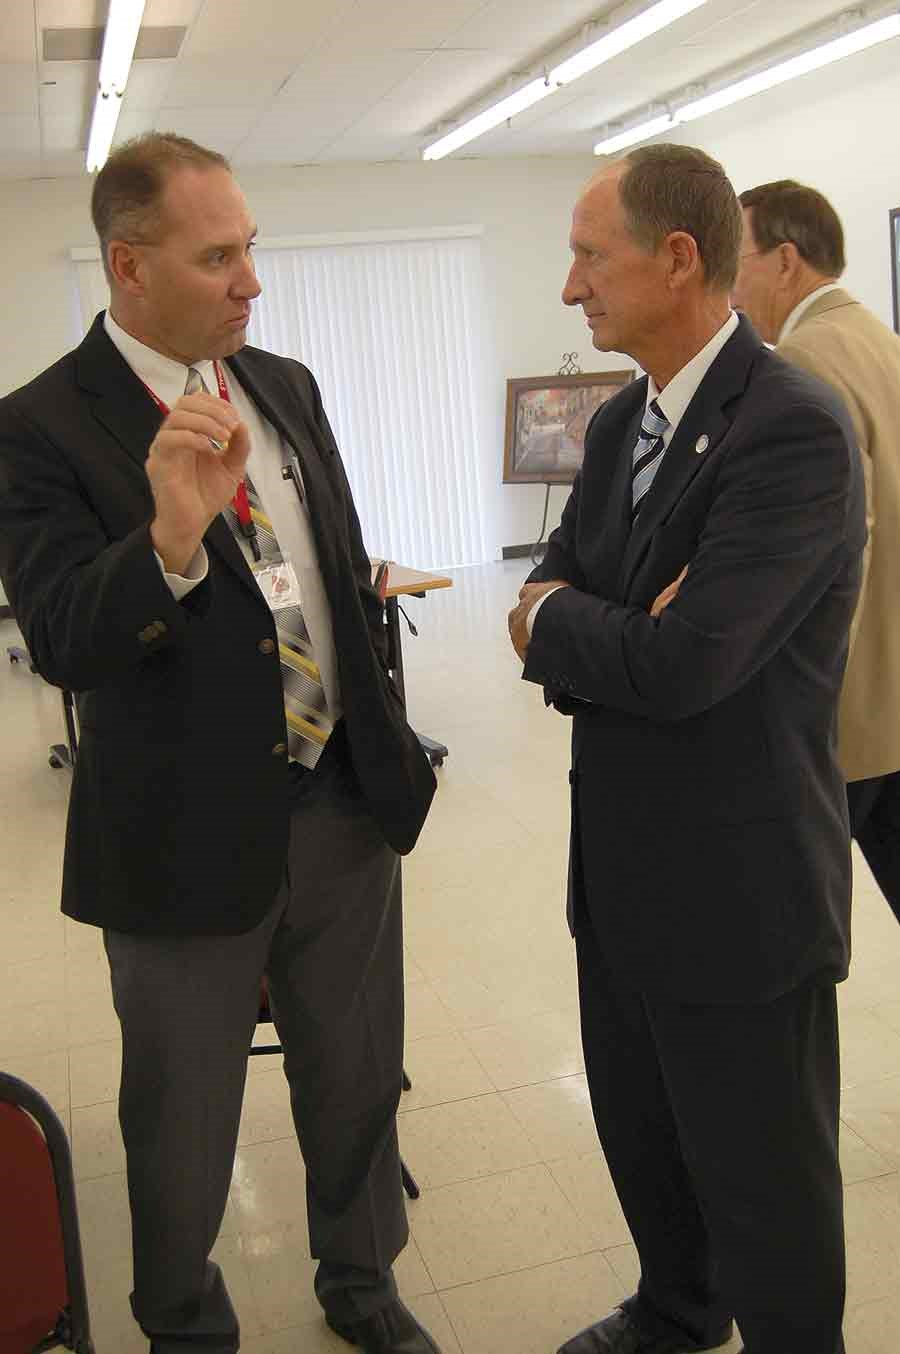 First-year Mayfield Independent Schools Superintendent Joe Henderson (left) makes a point in this one-on-one chat with Rep. Richard Heath (R-Mayfield). Echoing statements by his colleagues, Heath noted there will be considerable competition for any new funding when the legislature crafts the state budget for the 2016-18 biennium.